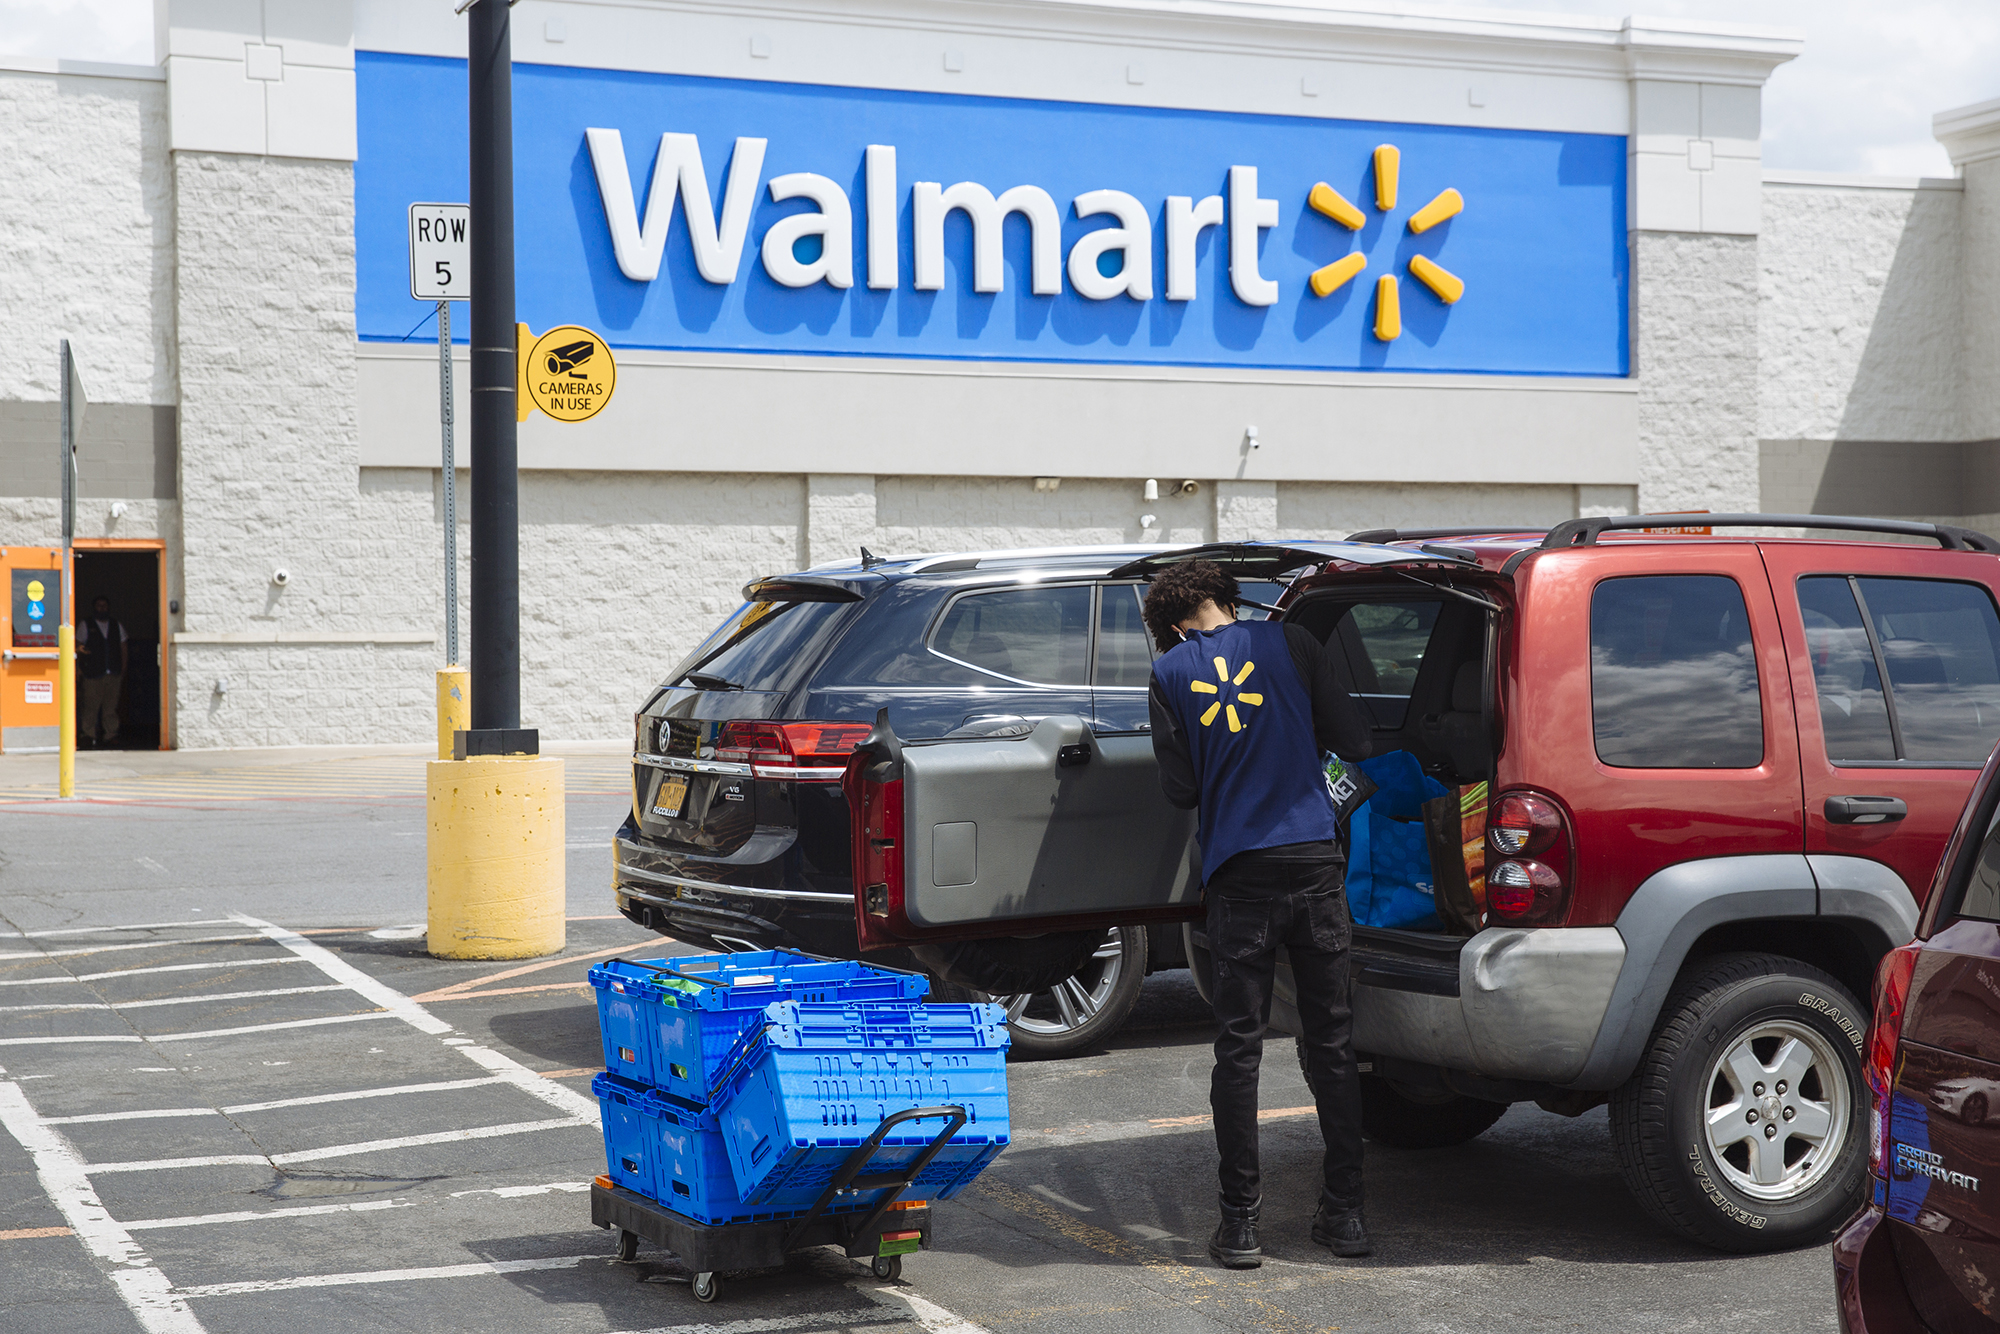 Walmart is about to give Amazon Prime a serious run for its money